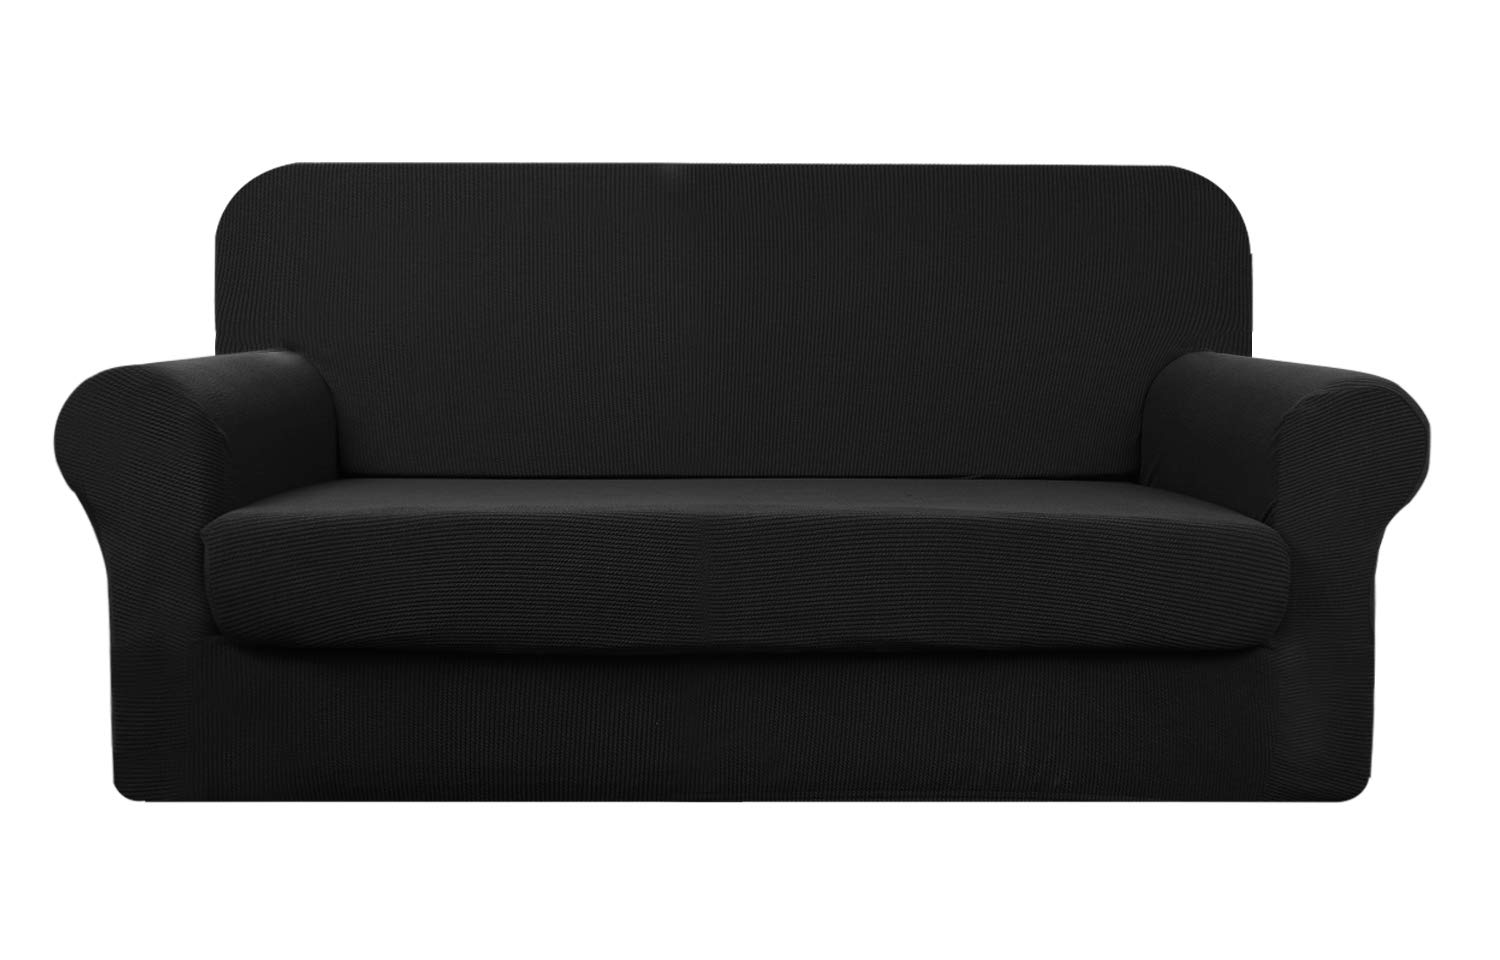 YUUHUM Stripes Loveseat Covers 2-Piece Super Stretch Love Seat Sofa Covers Pet Dog Couch Slipcovers (Loveseat, Black)